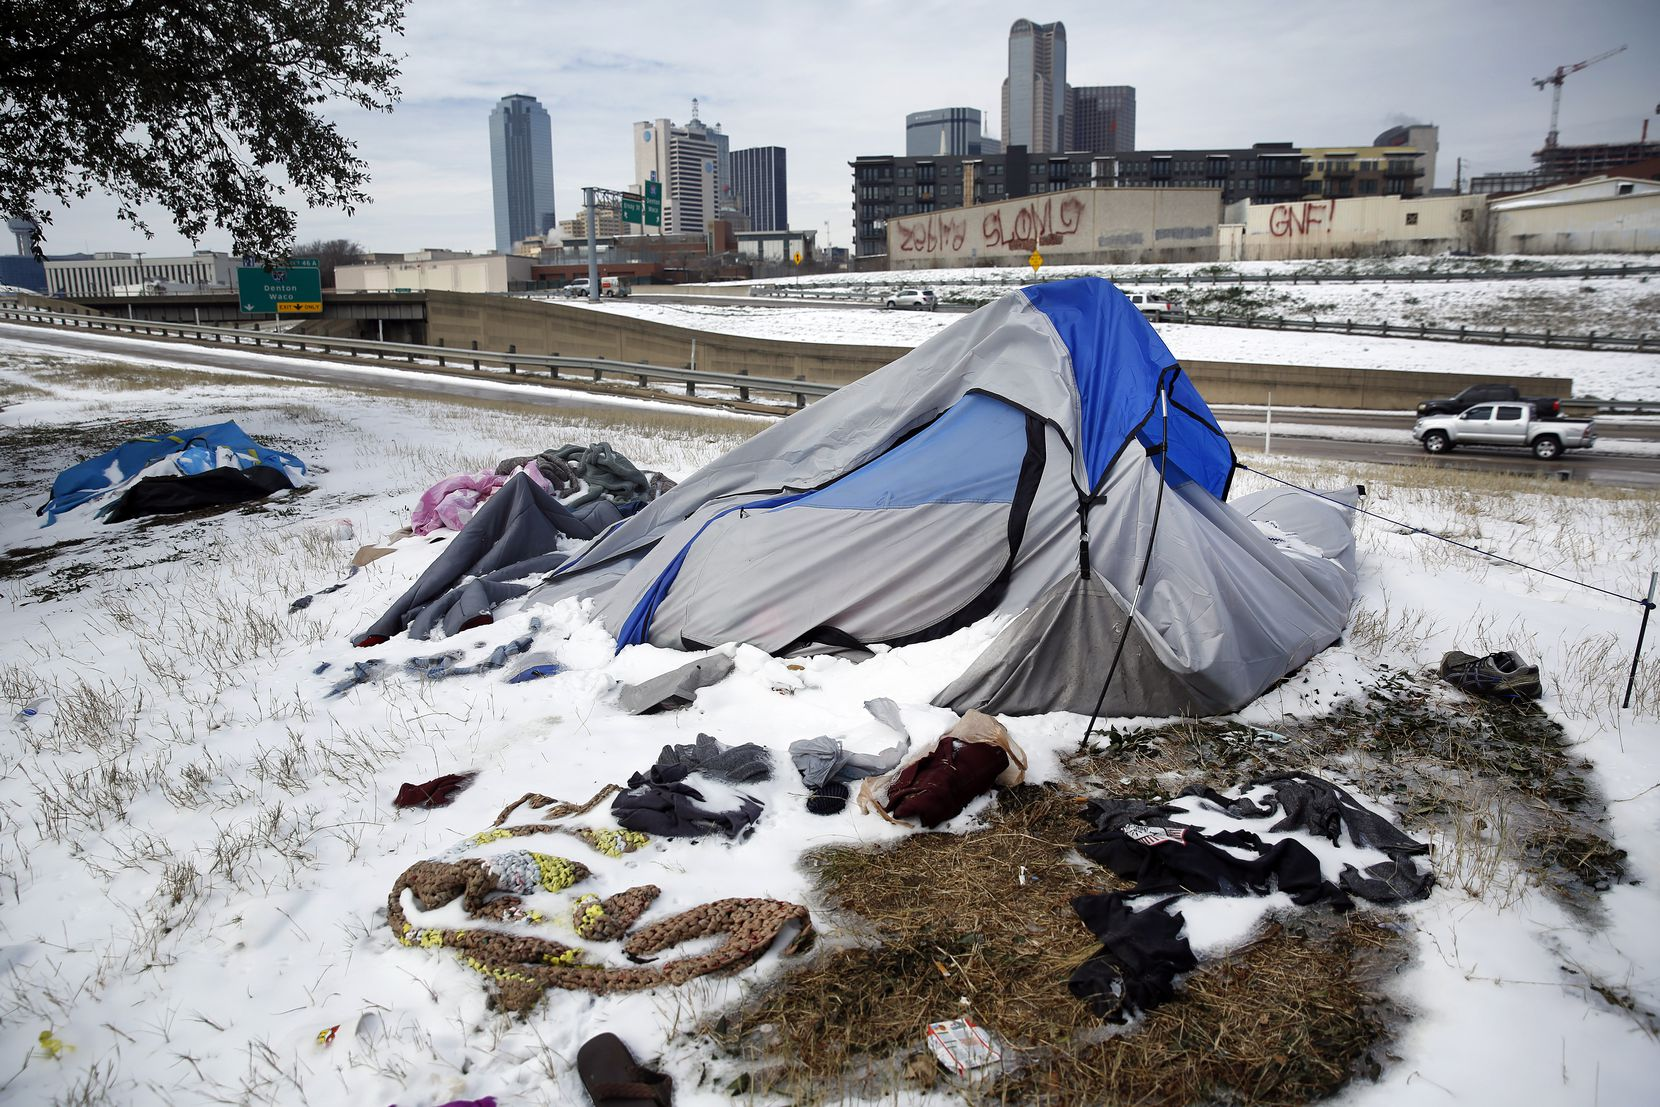 Snow-covered tents pitched along Interstate 30 were abandoned by their owners as a snow storm and sub-freezing temperatures rolled into downtown Dallas. A nearby warming shelter at the Kay Bailey Hutchison Convention Center was set up by OurCalling and was housing about 700 people who found refuge from the deadly cold temperatures in Hall E-F.  (Tom Fox/The Dallas Morning News)